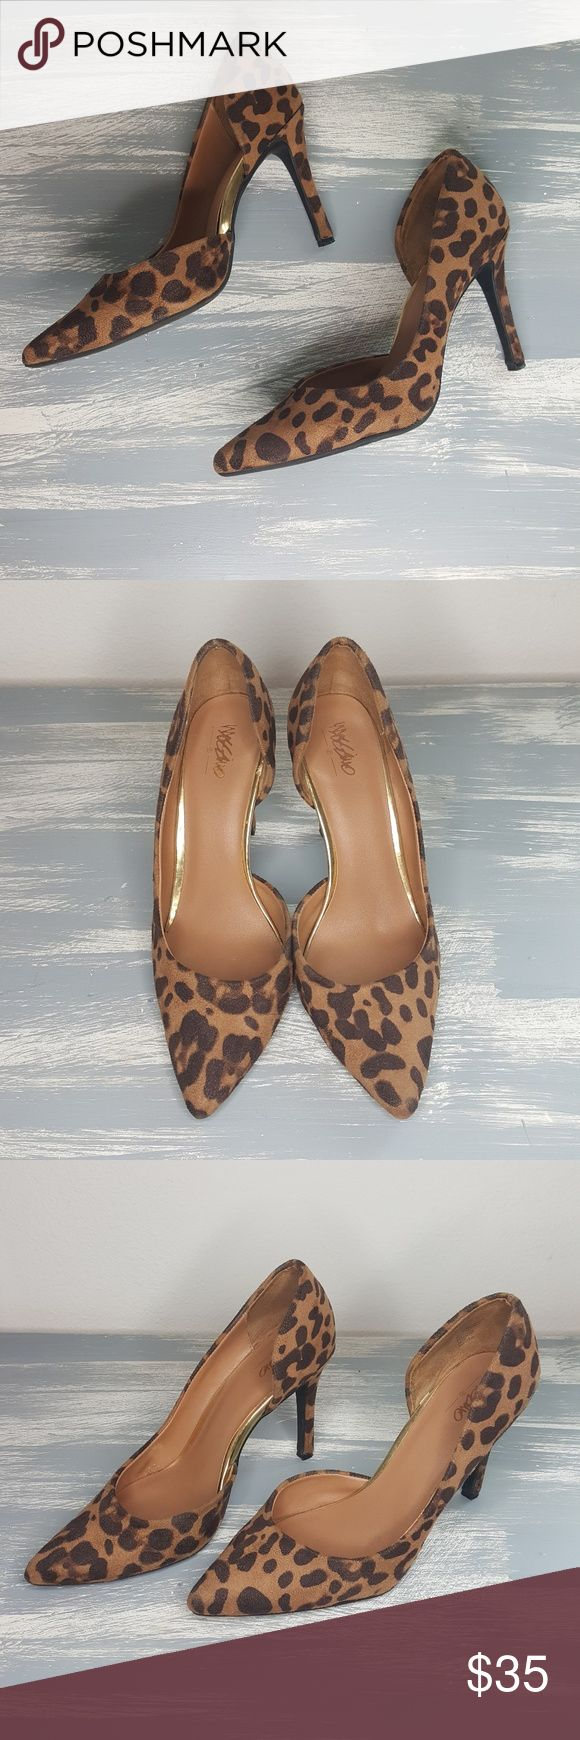 Mossimo Cheetah Print Heels These are in excellent used condition. They have gold accents. And are super comfortable. They feel very cushiony. A very cute statement piece to any outfit whether it's with jeans or business casual. Taking all offers. Mossimo Shoes Heels